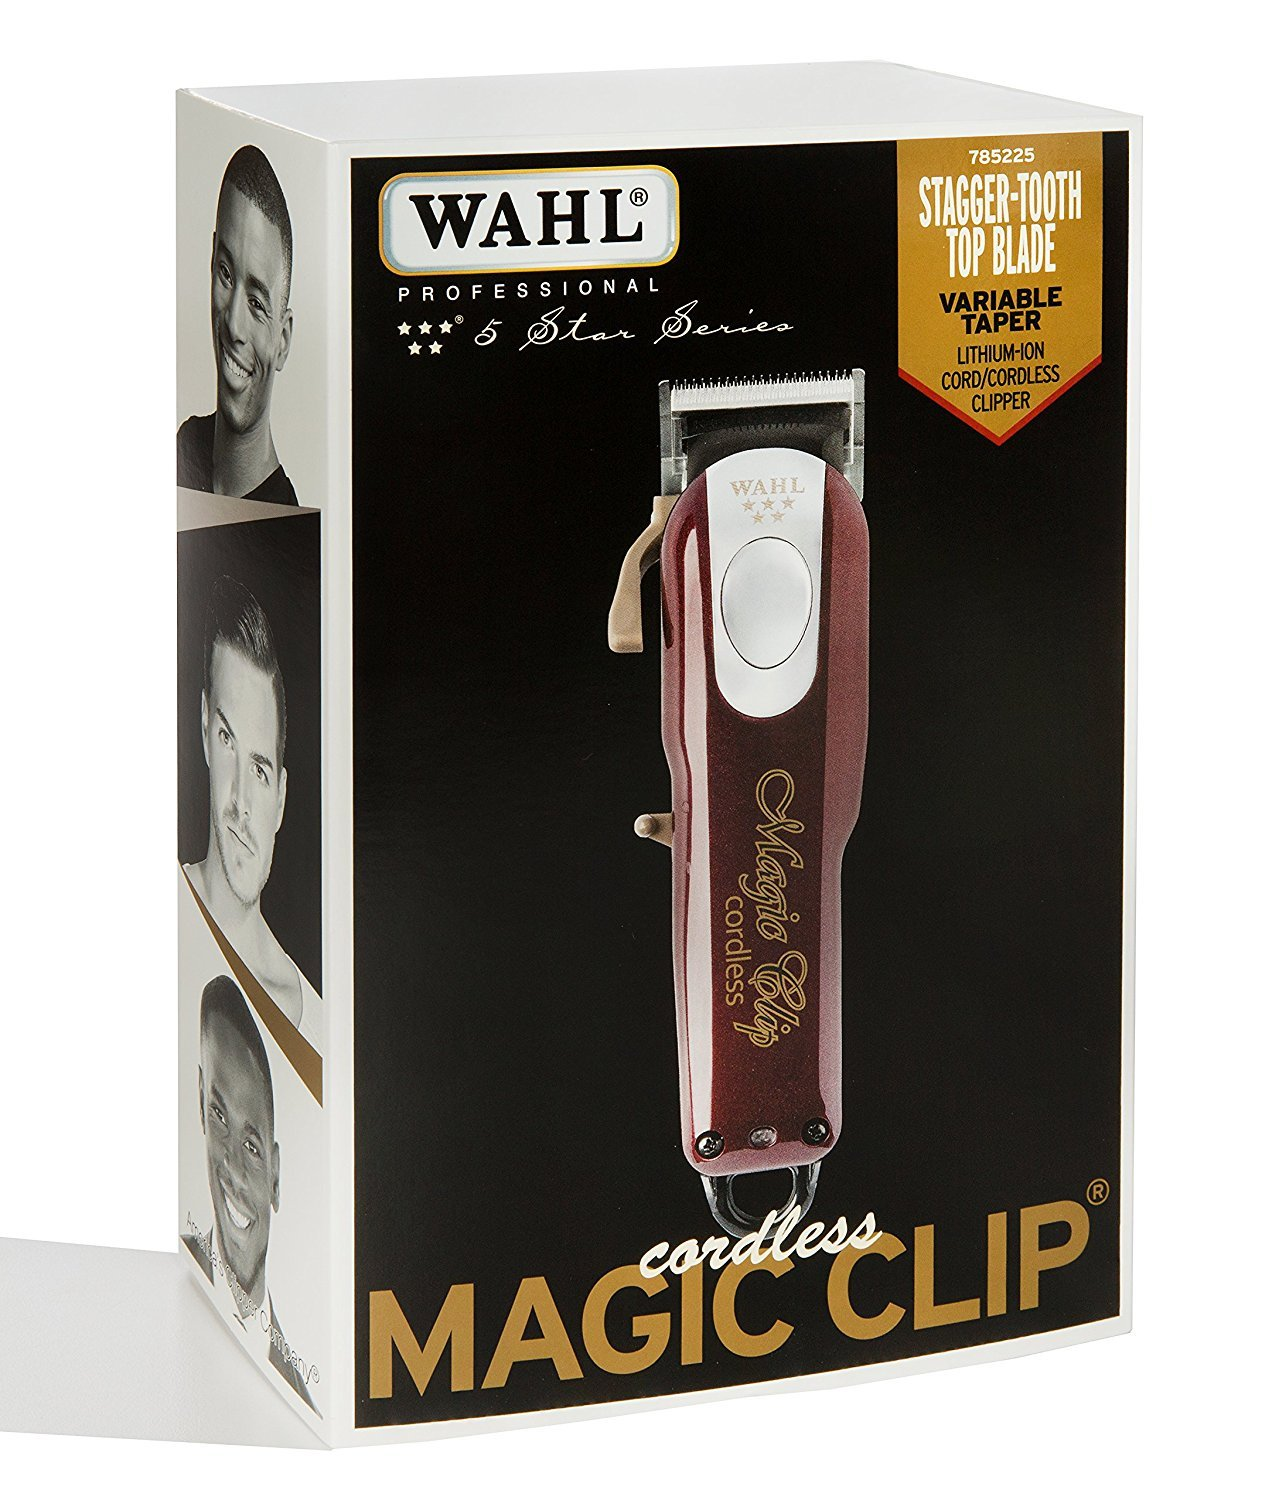 Wahl Professional 5-Star Cord/Cordless Magic Clip #8148 – Great for Barbers and Stylists – Precision Cordless Fade Clipper Loaded with Features – 90+ Minute Run Time by Wahl Professional (Image #2)